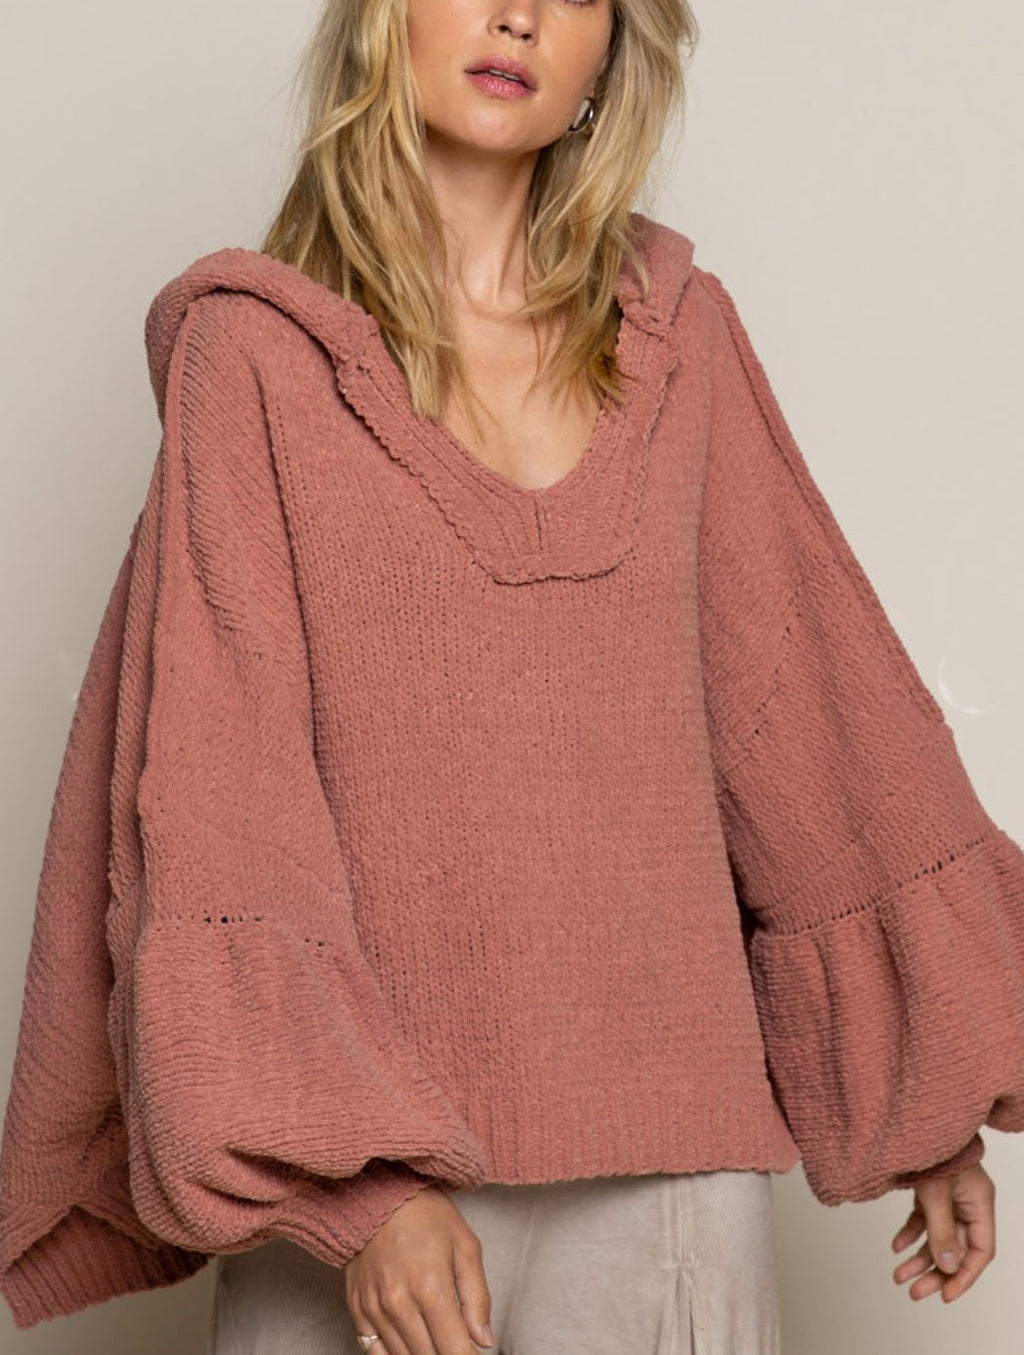 Pol Hoodie Pullover in Canyon Clay